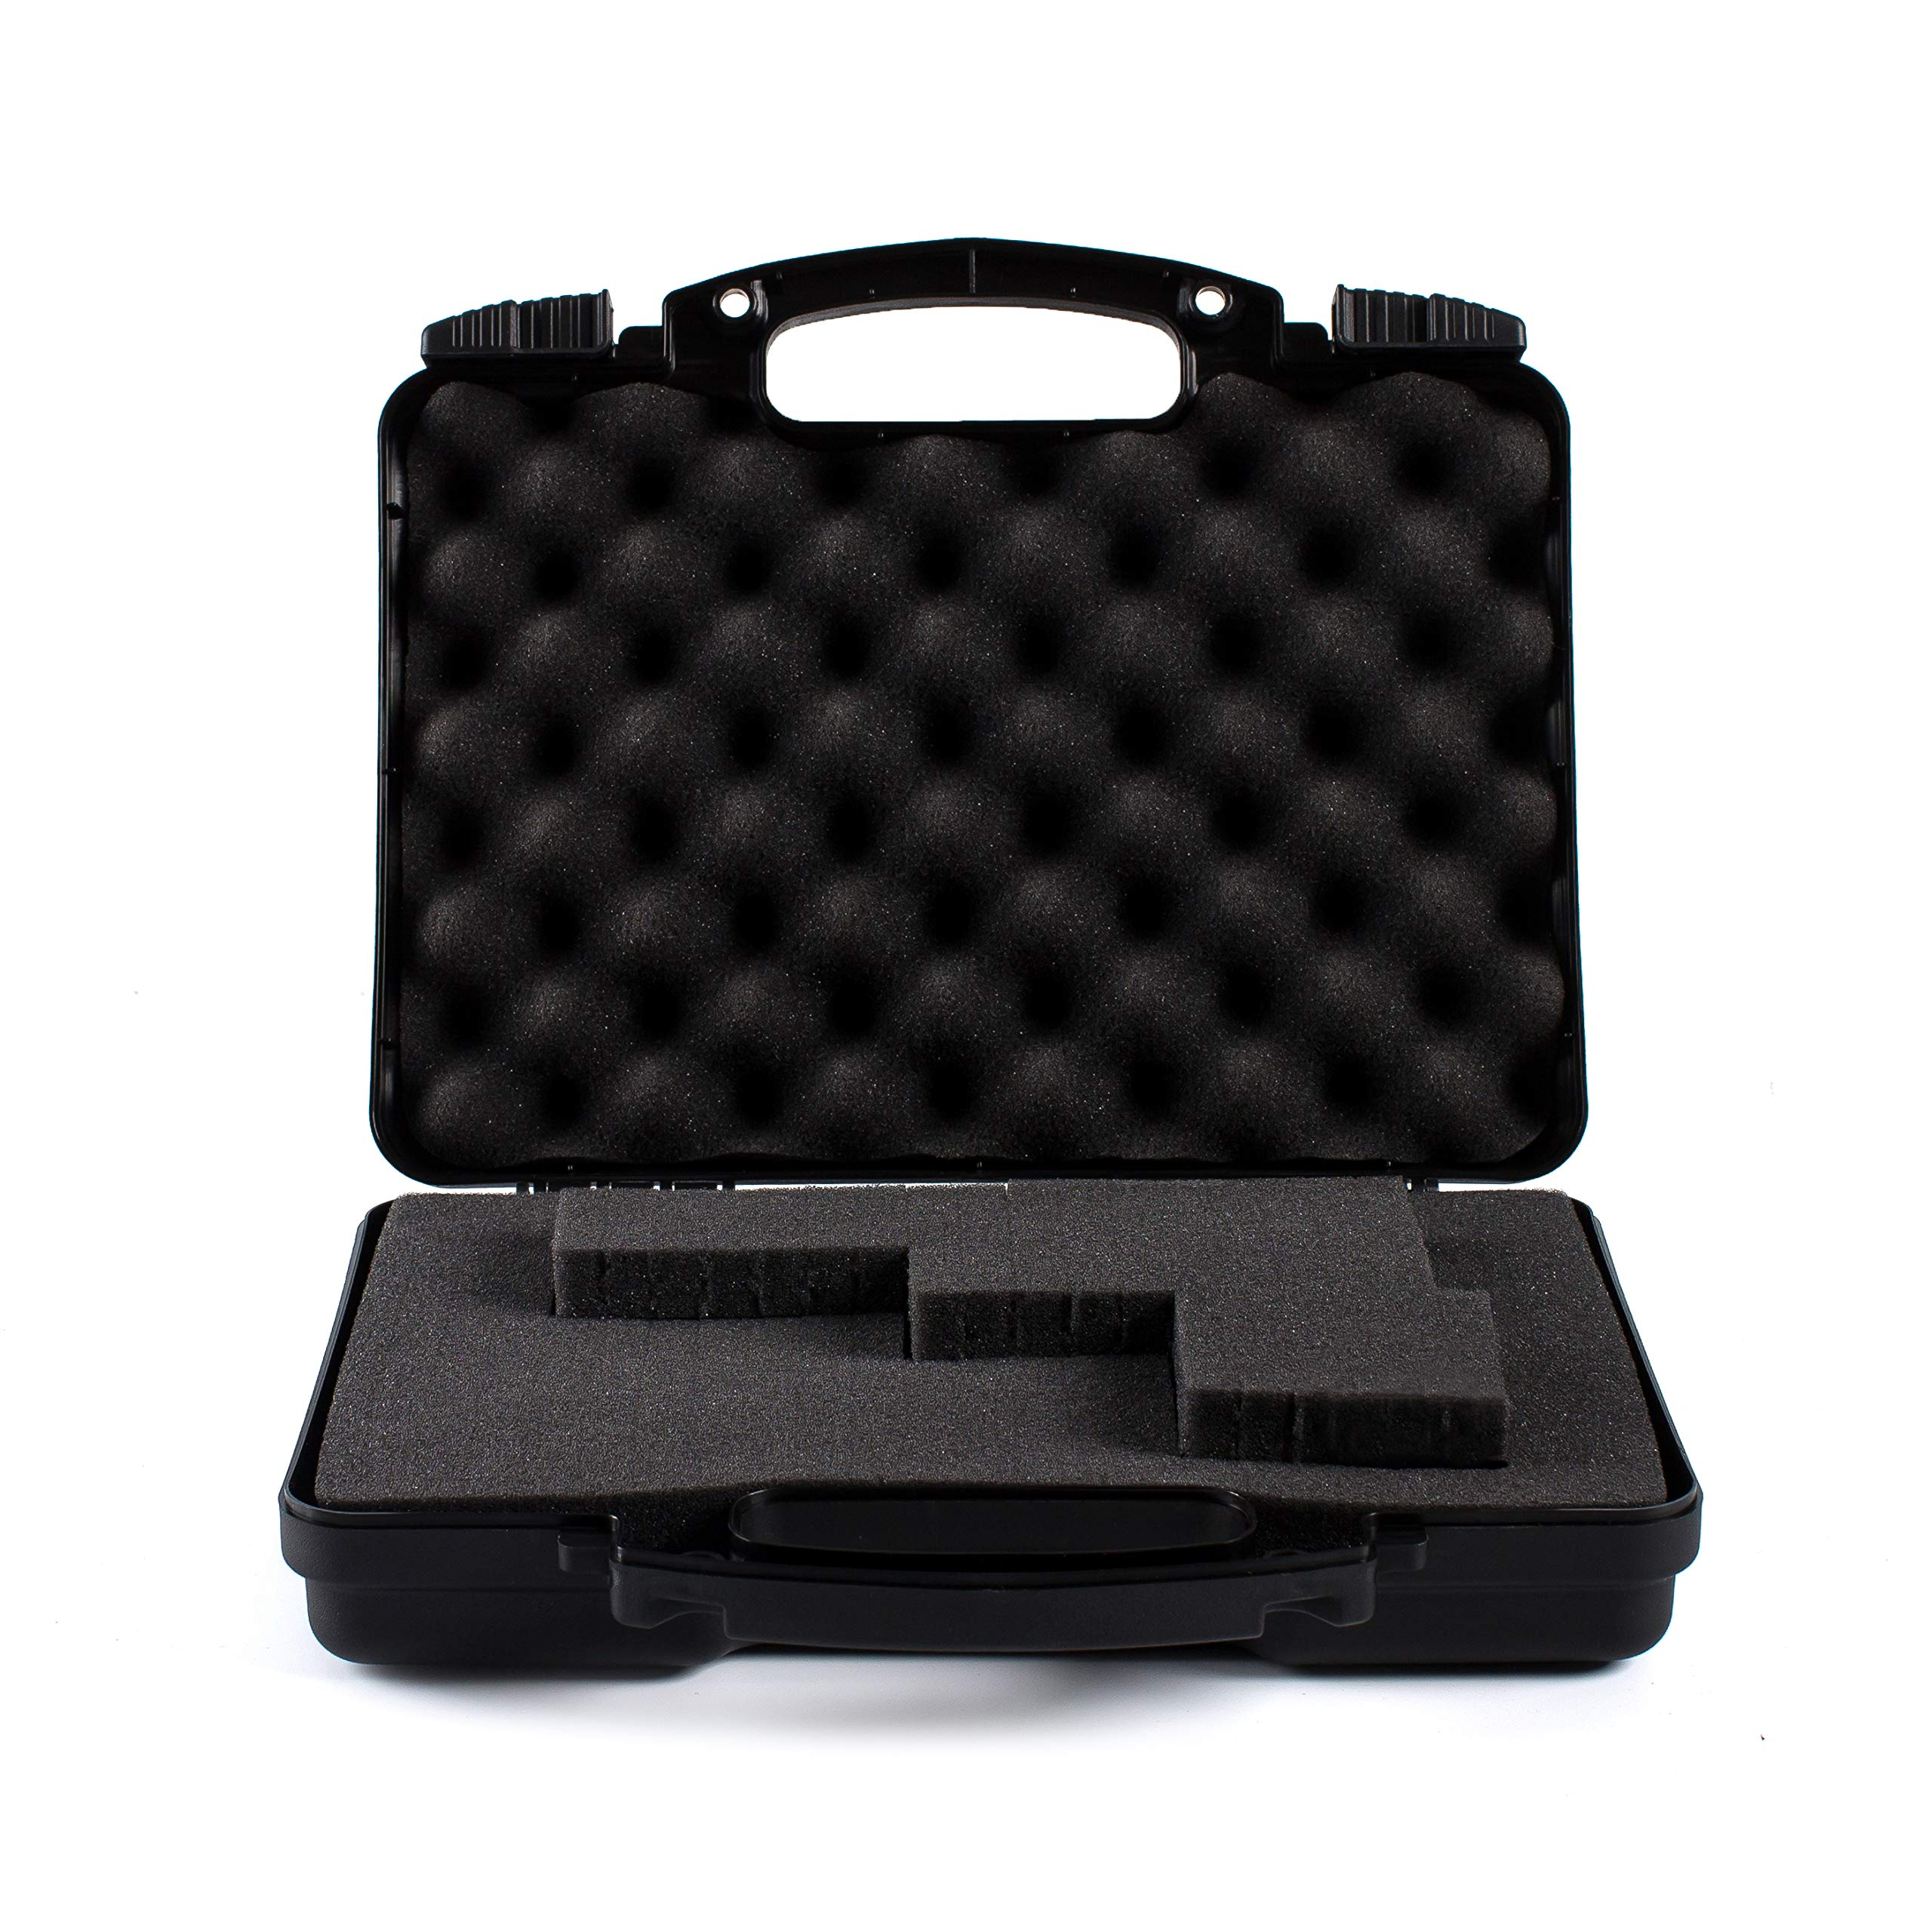 Daoe NWT110 Lockable Hard Pistol Gun Case with Pluckable Foam, TSA Approved by Daoe